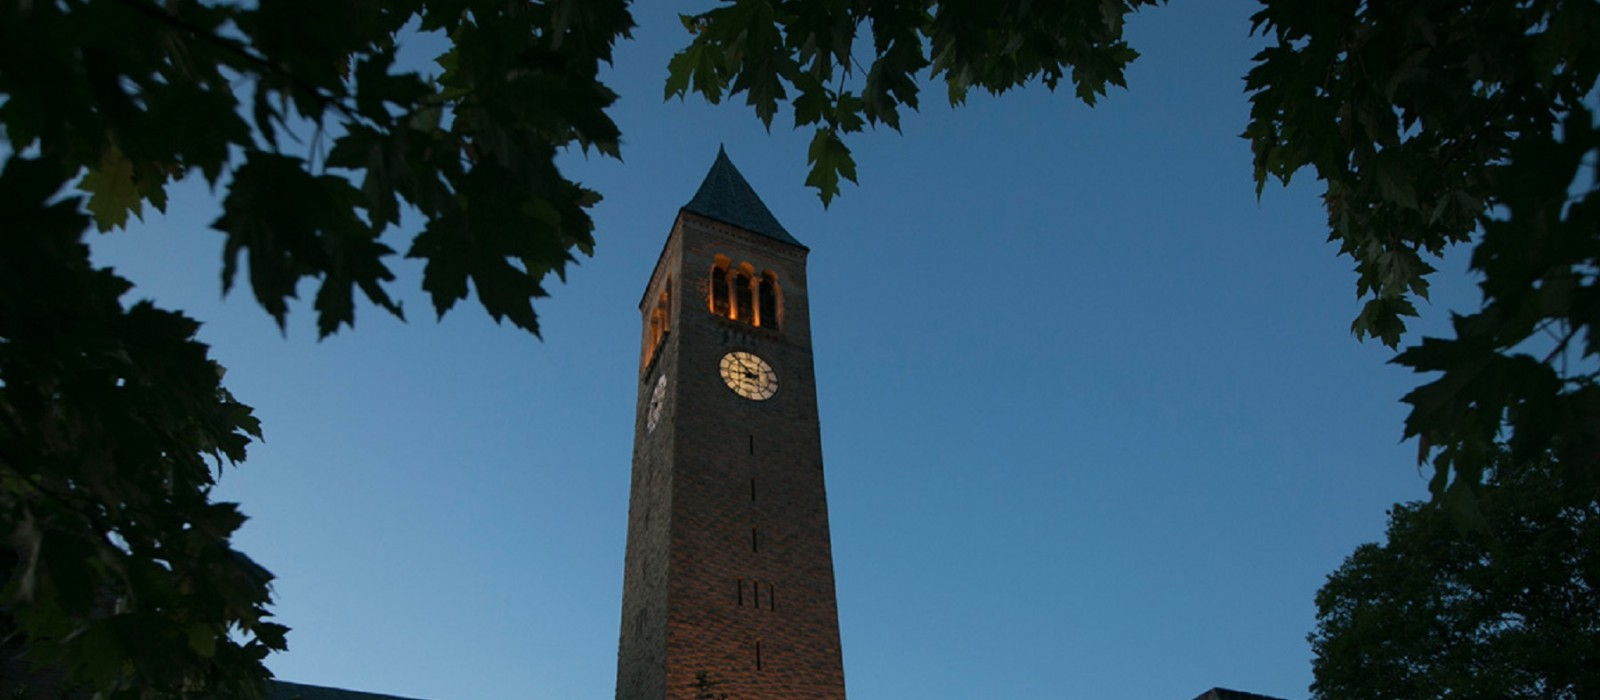 cornell clocktower at dusk